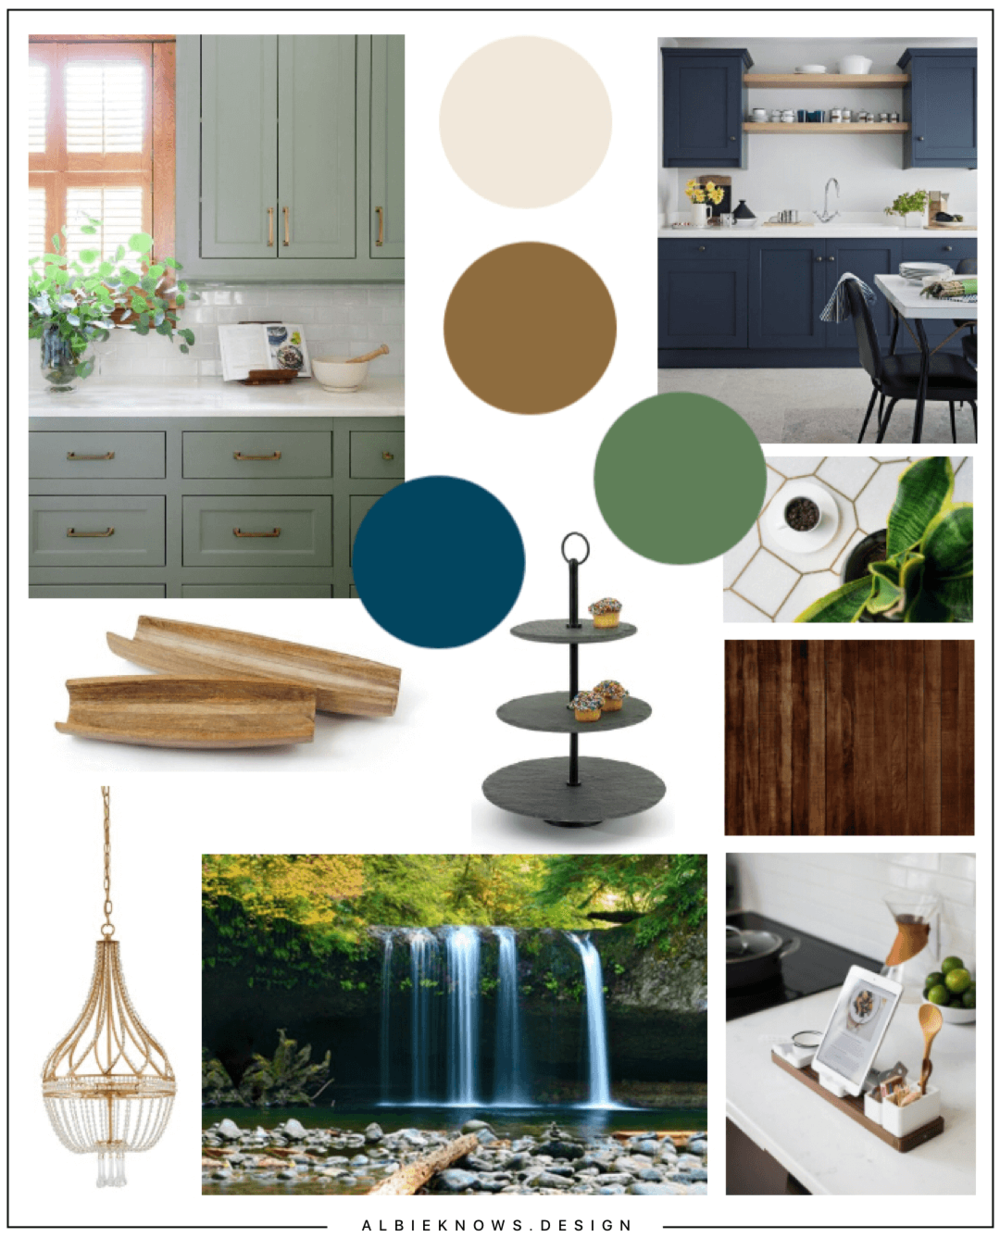 Curated Country Kitchen - Nature inspired with hints of Hygge, this heart of the home is filled with soothing tones, natural finishes, and curated decor.